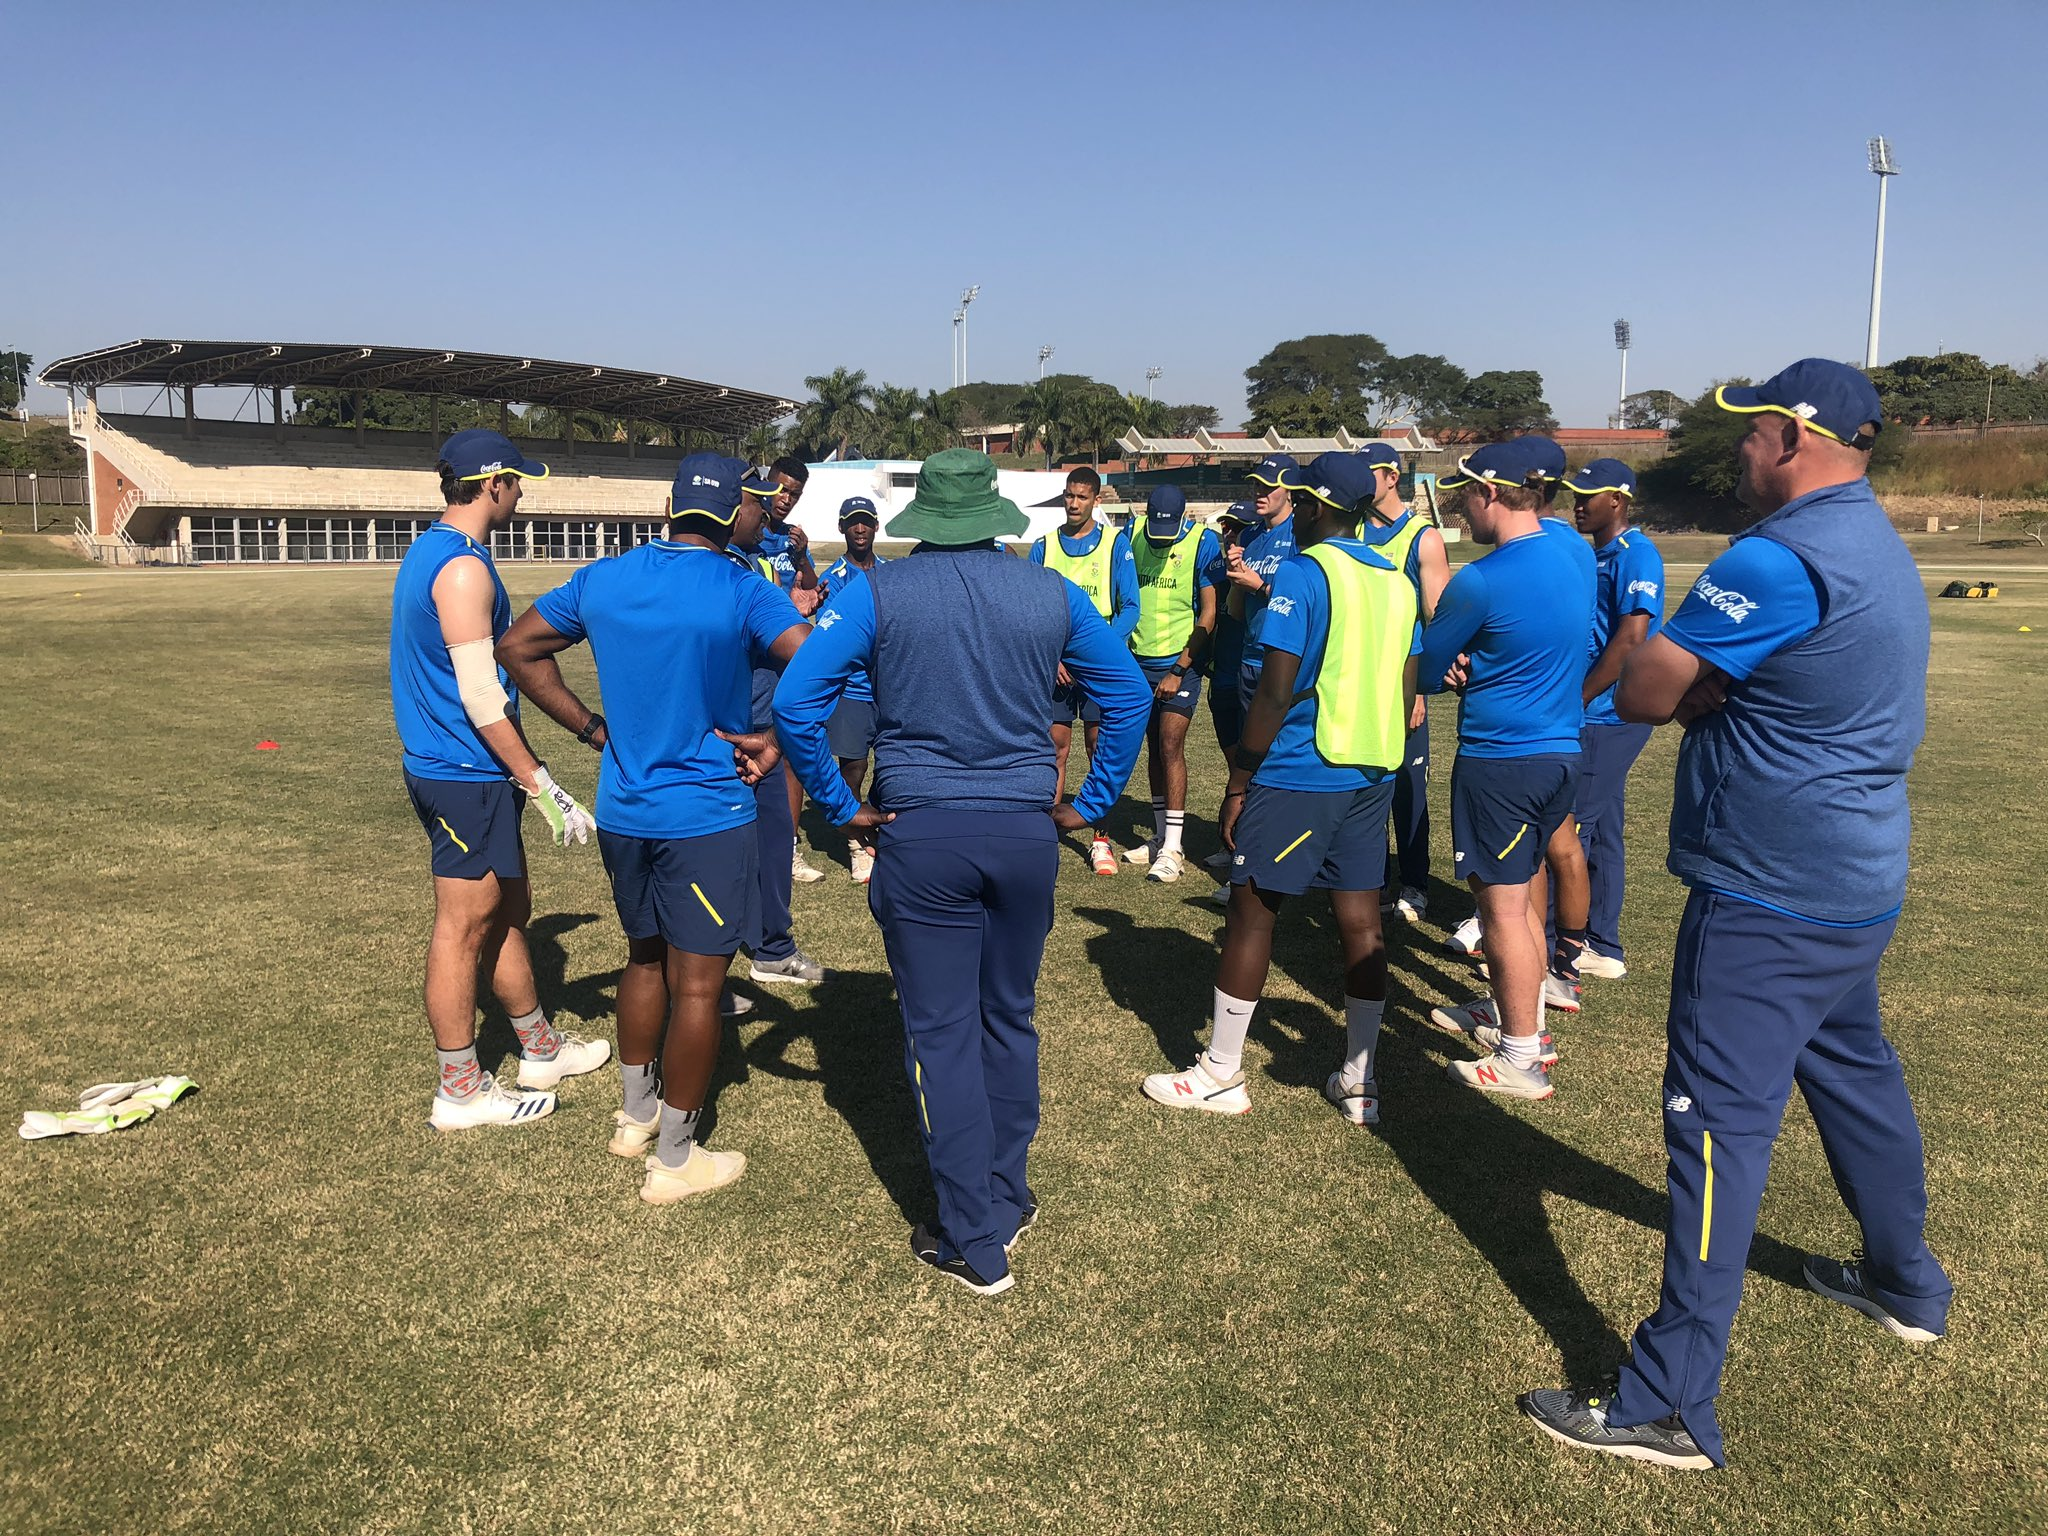 South Africa National Cricket Team Twitter Photo Back To